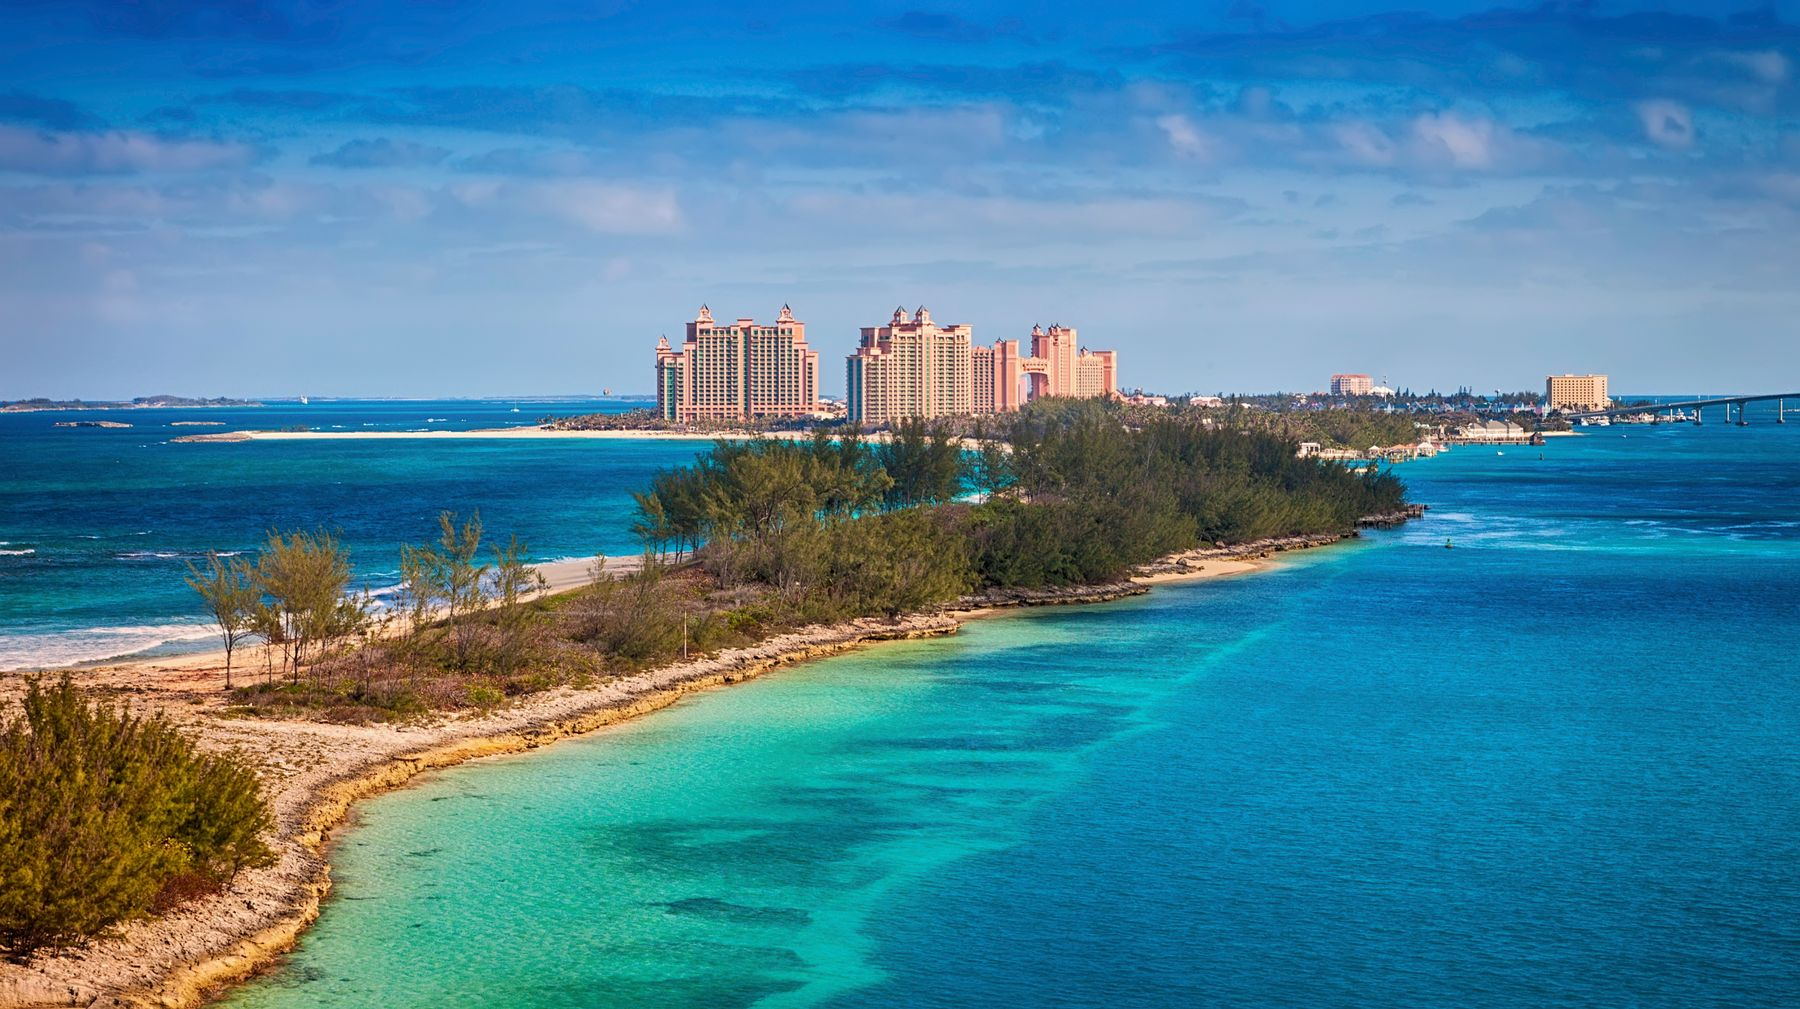 The Paradise Island at The Bahamas makes for a perfect destination for your luxury holidays 2021